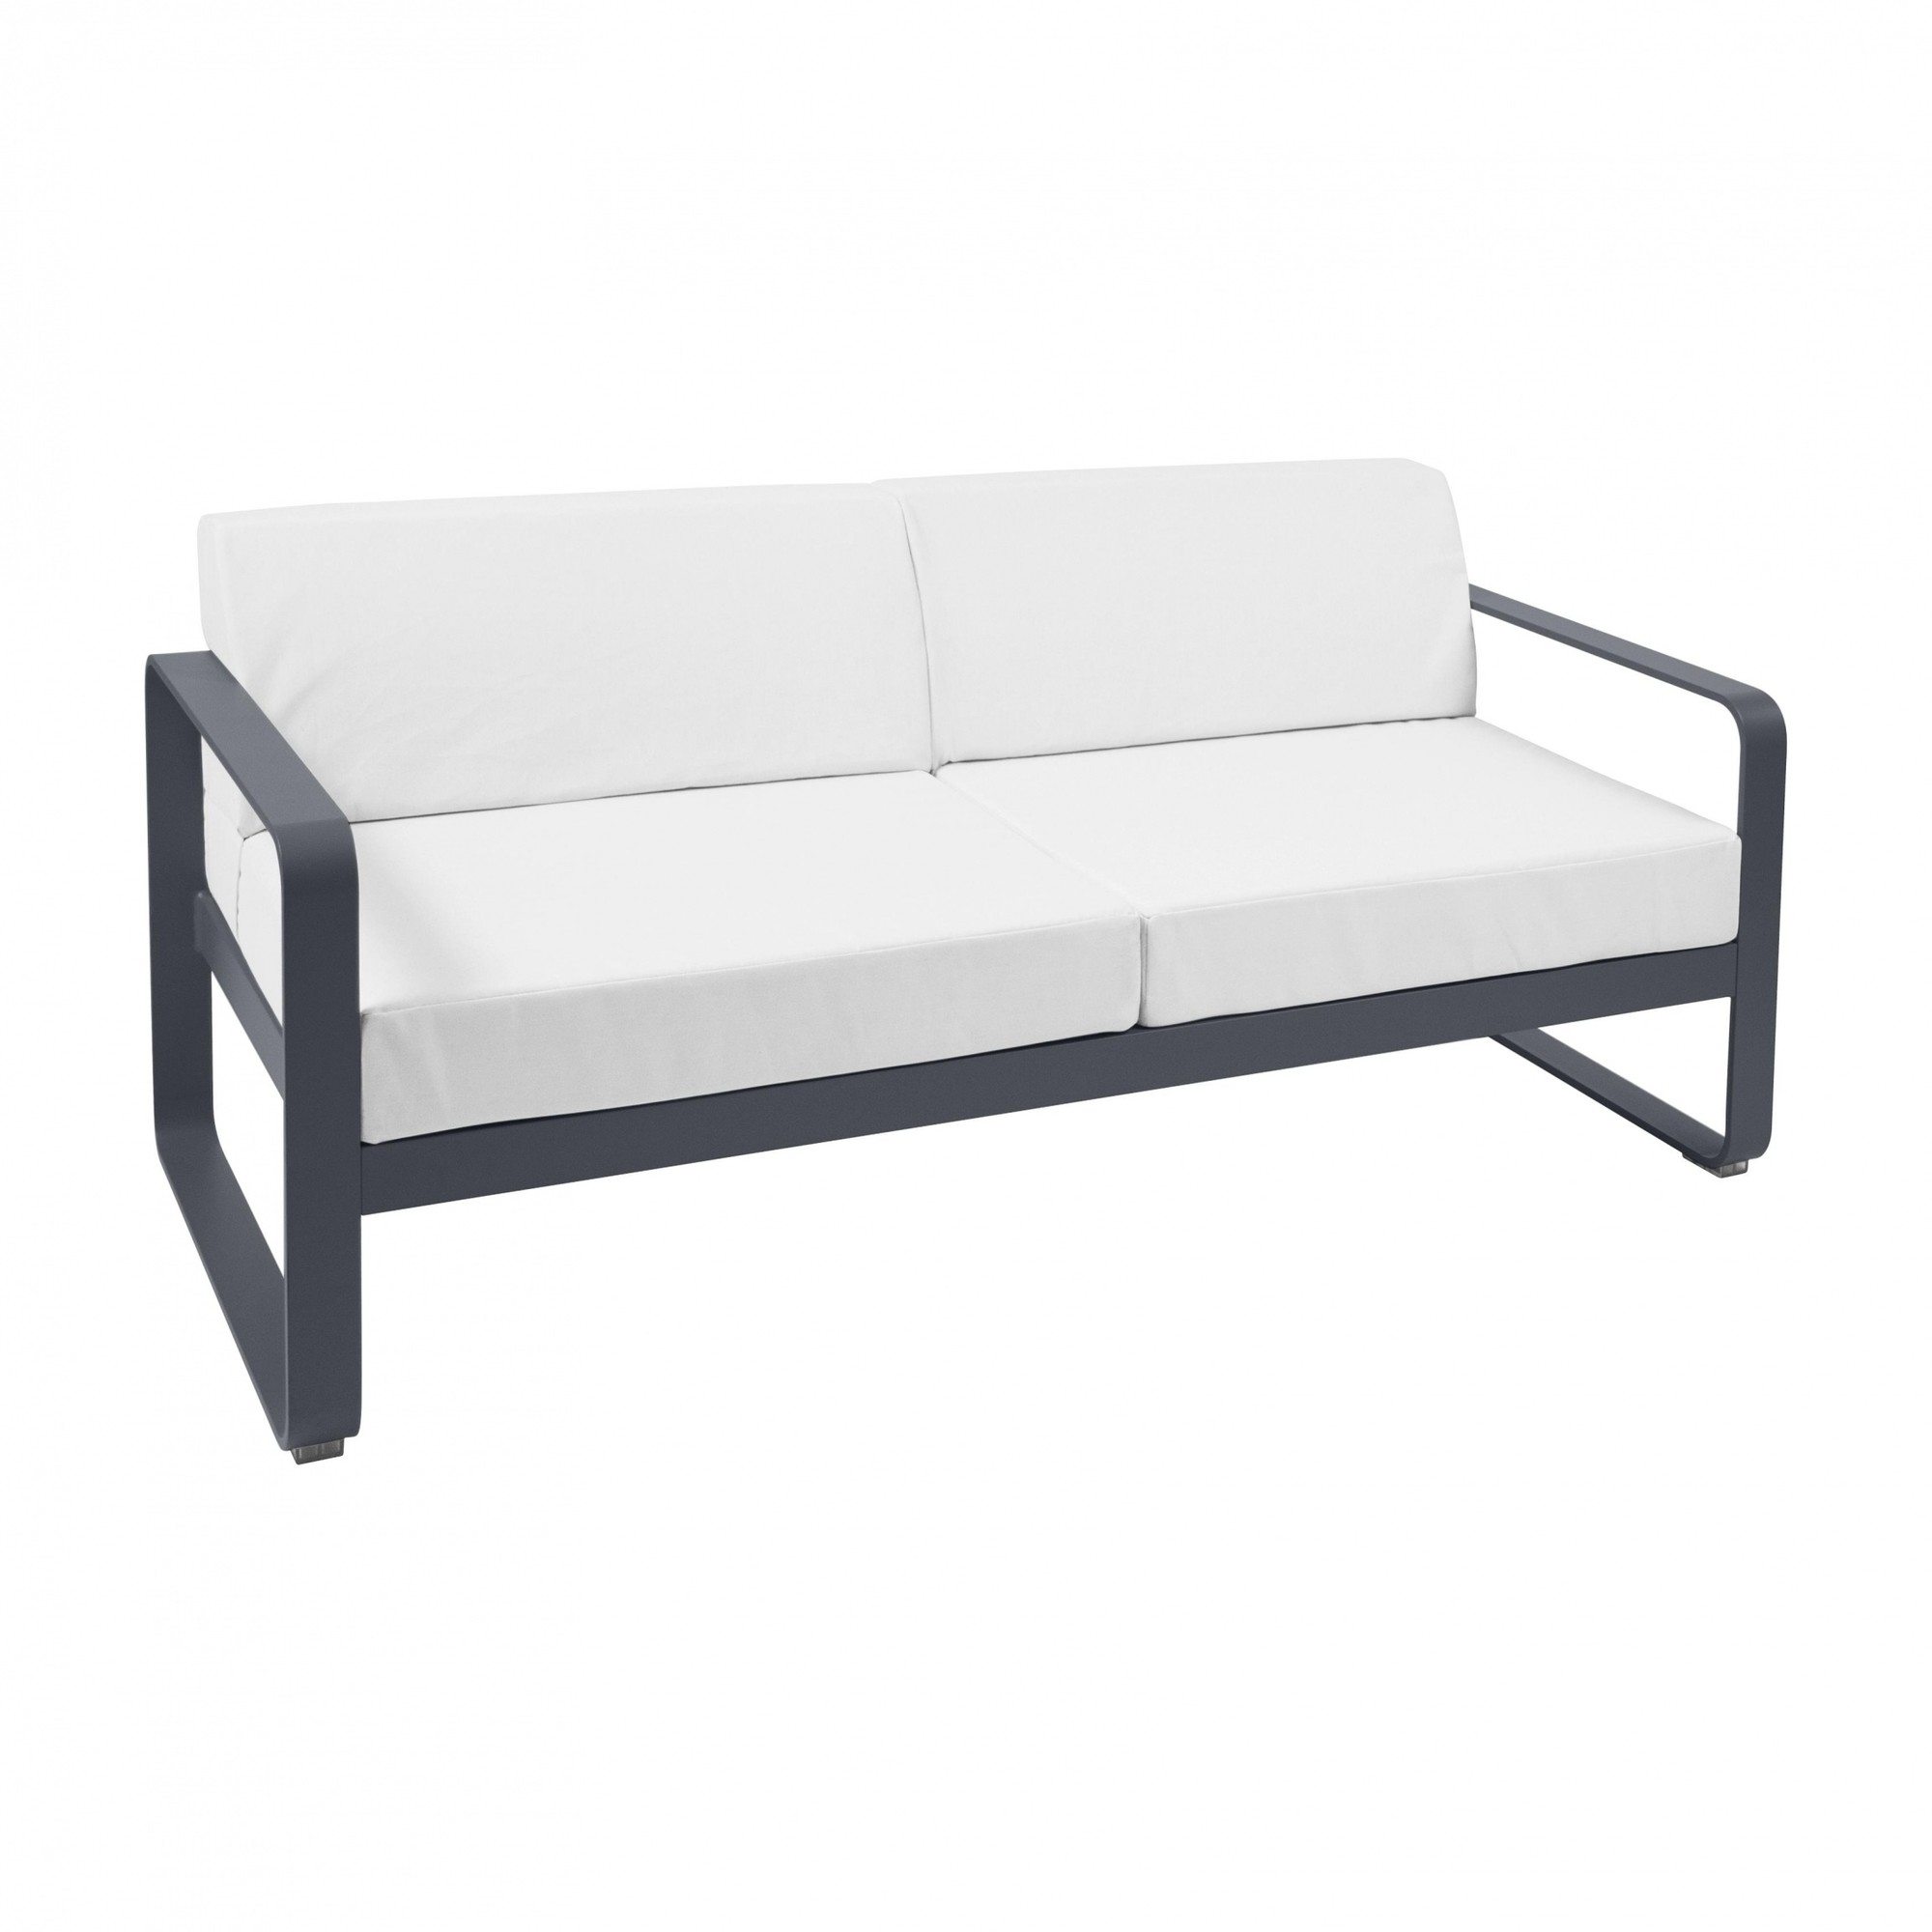 Cool Bellevie Outdoor Sofa 2 Seater Gamerscity Chair Design For Home Gamerscityorg